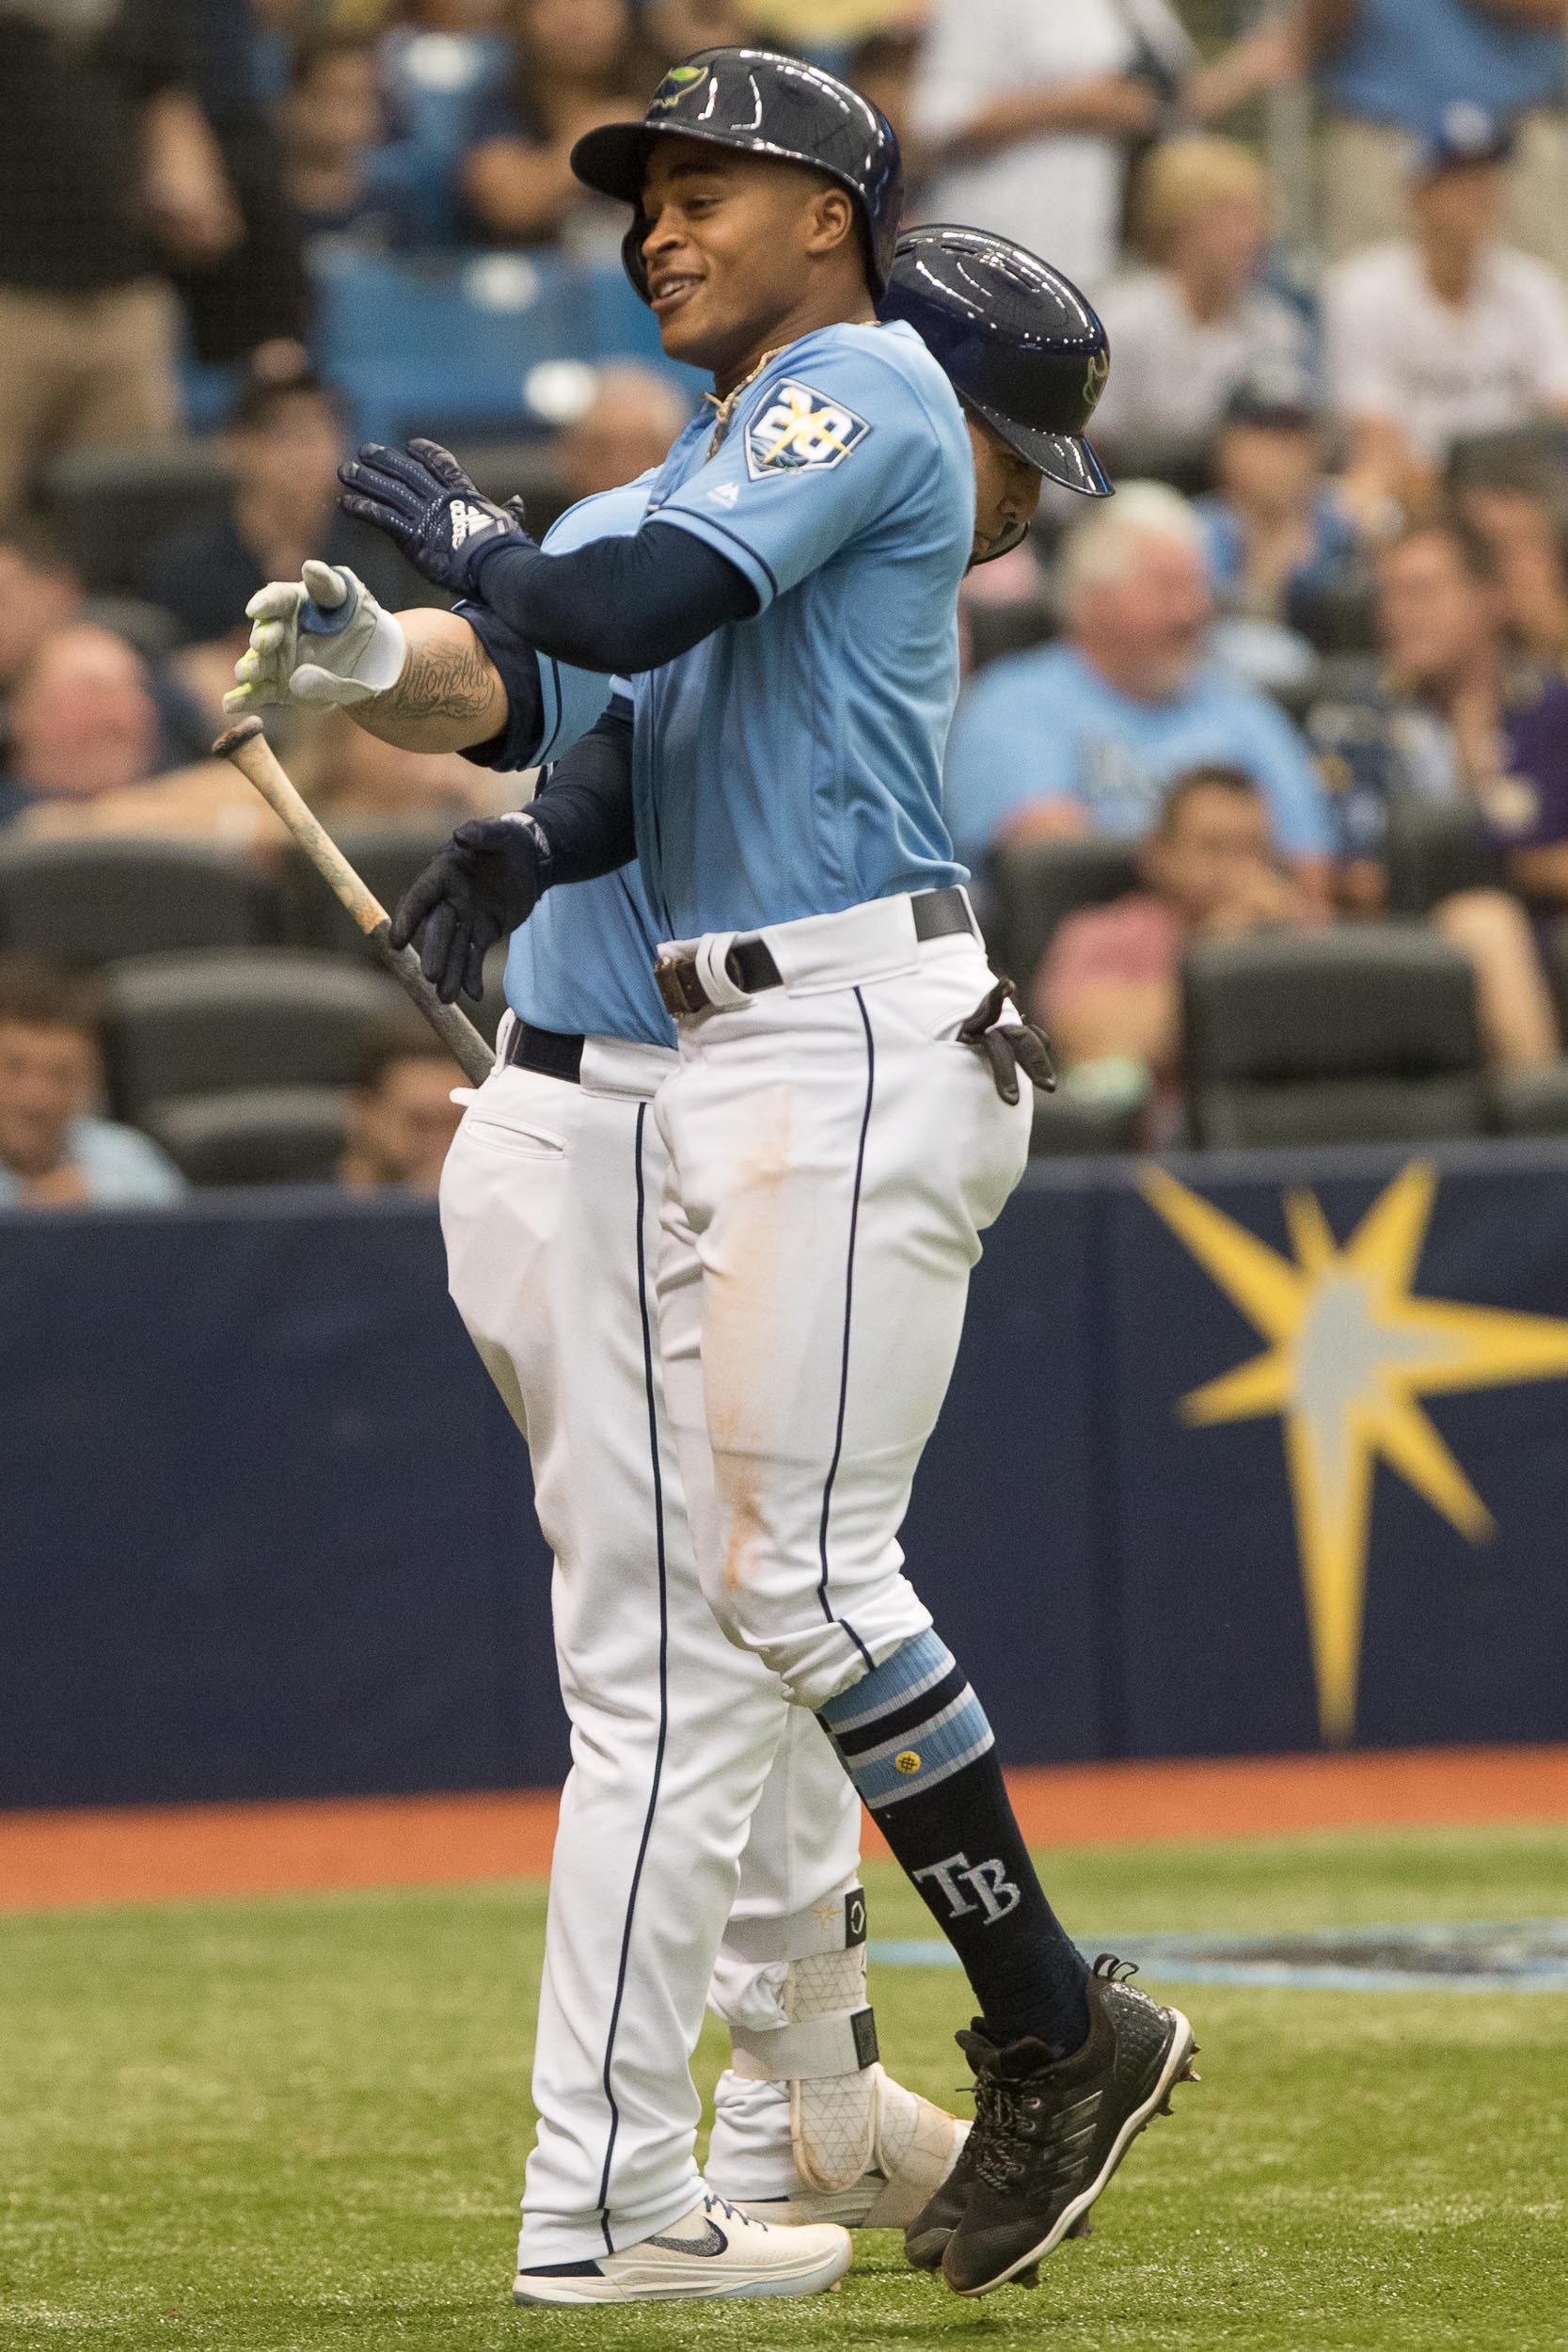 Mallex Smith celebrates a rare home run./STEVEN MUNCIE